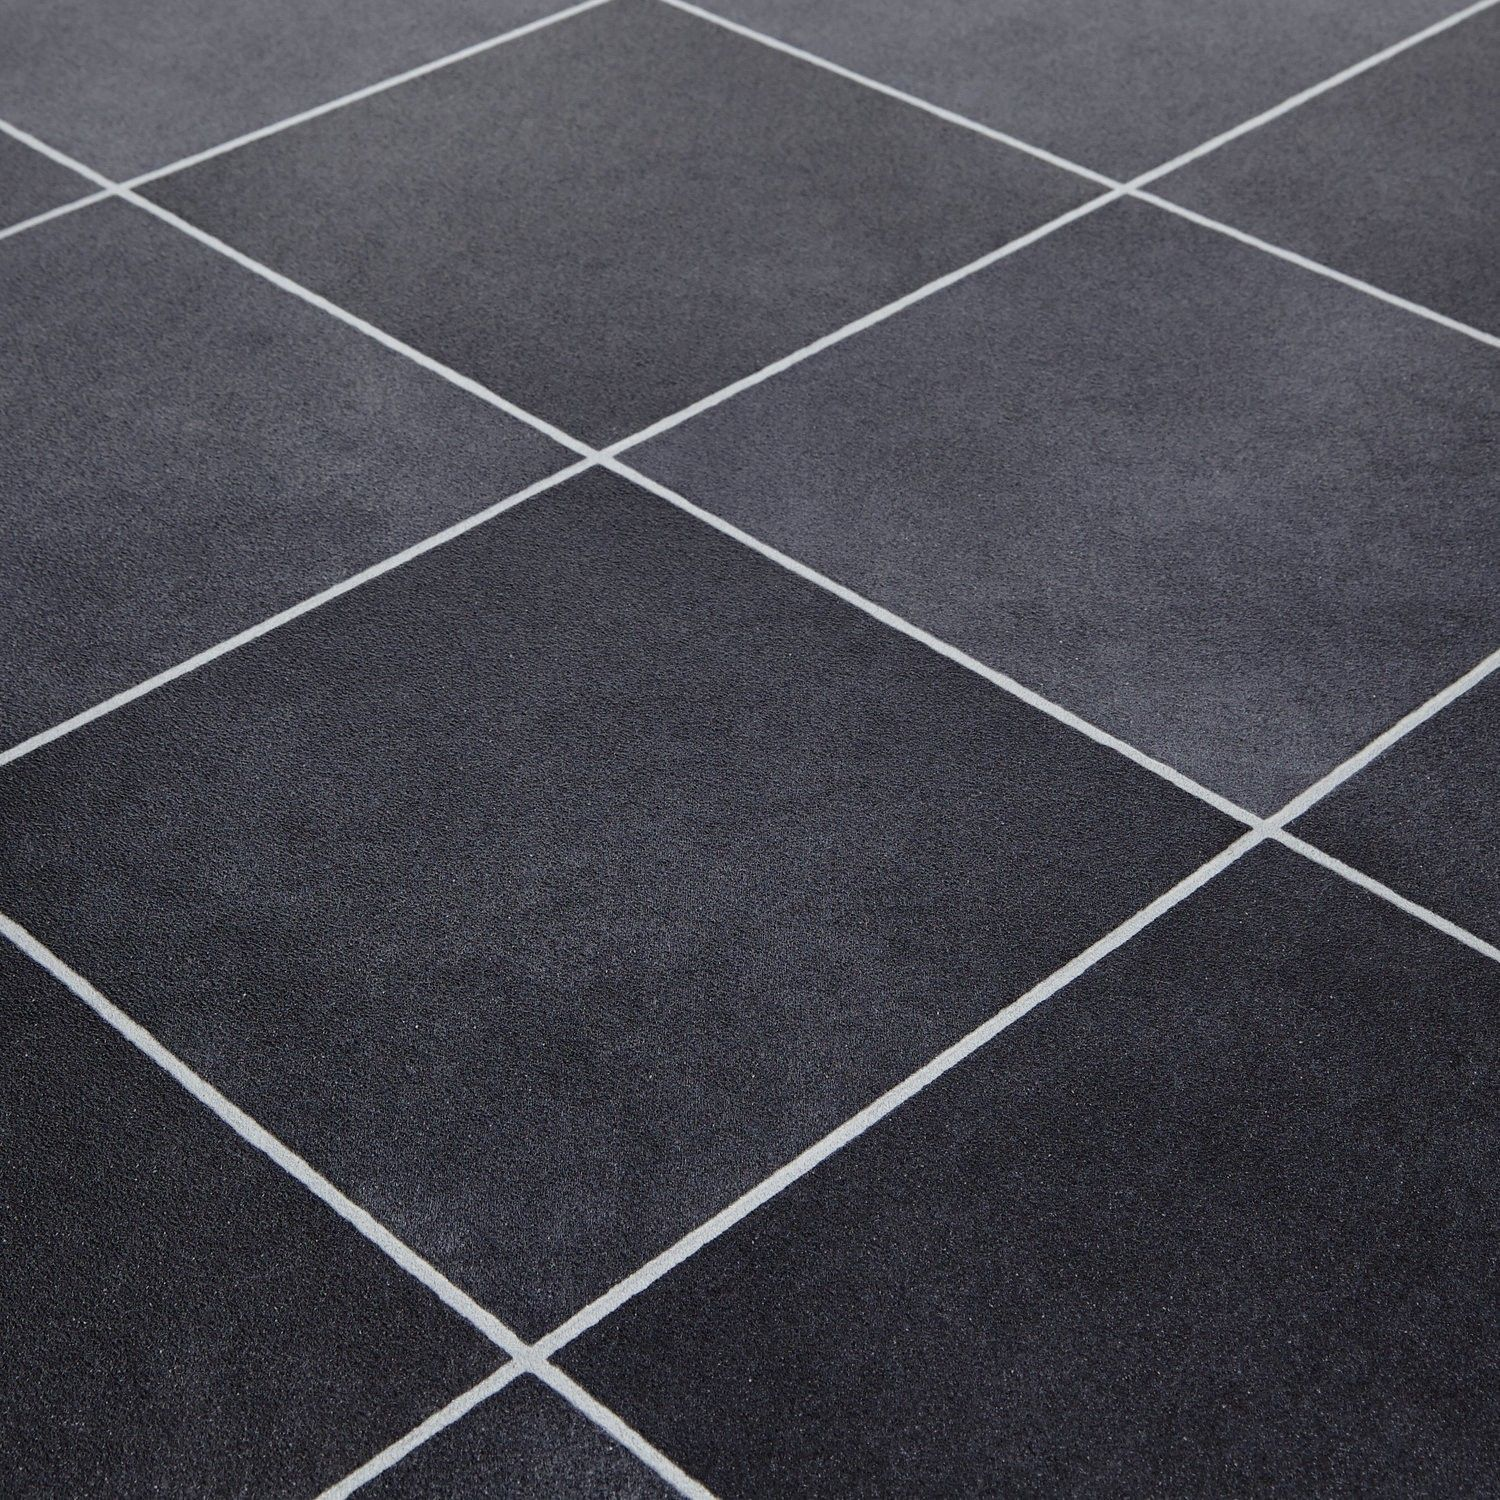 Mardi gras 598 durango black stone tile vinyl flooring kitchen mardi gras 598 durango black stone tile vinyl flooring dailygadgetfo Image collections